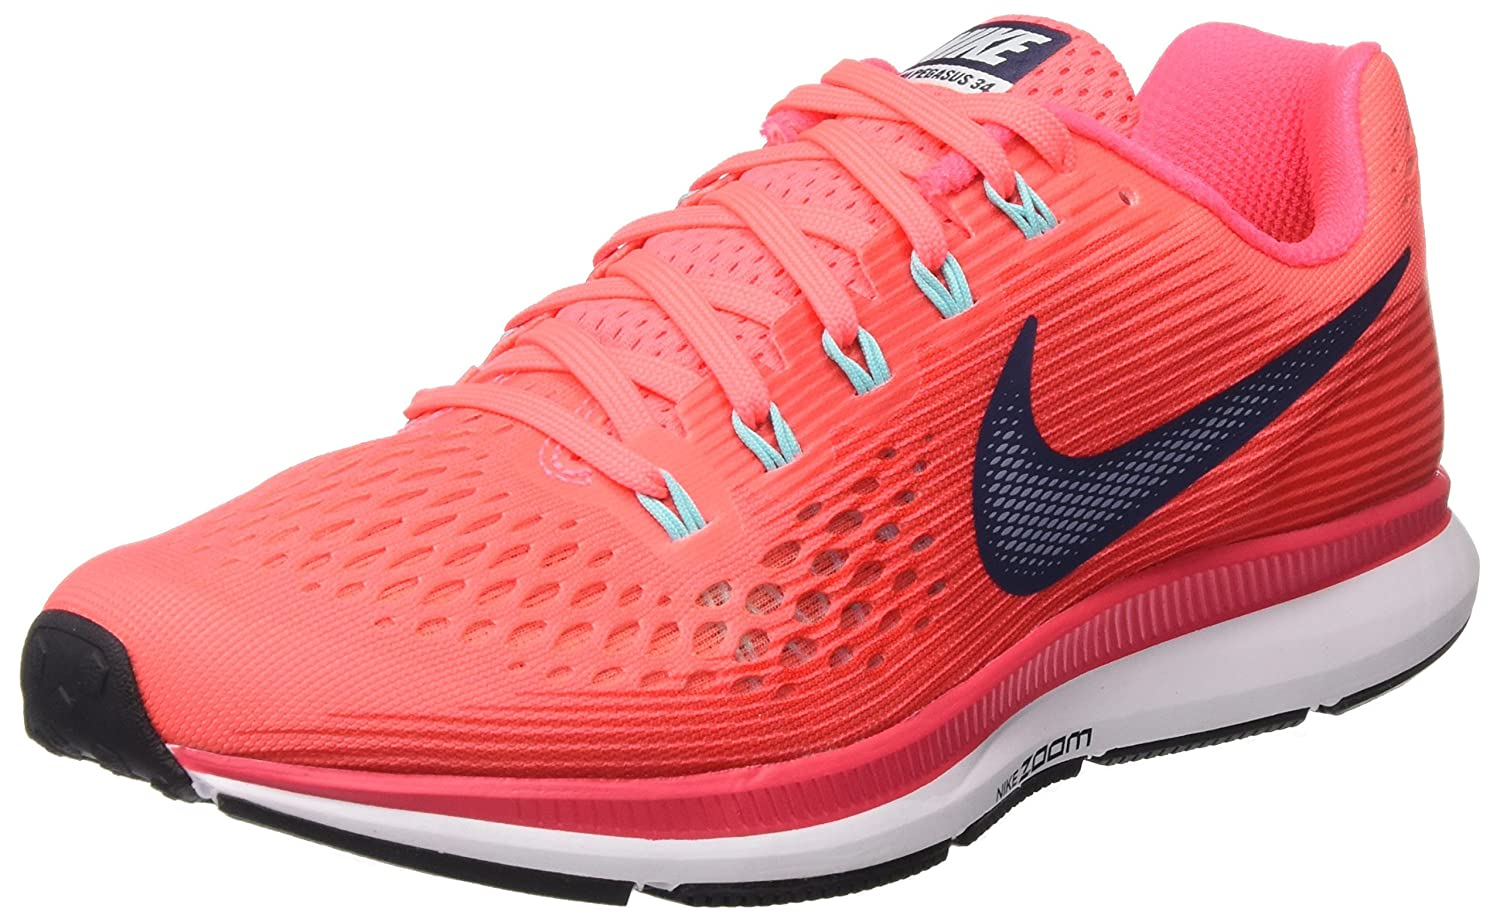 Nike Wmns Air Zoom Pegasus 34, Zapatillas de Running para Mujer 38 EU|Rosa (Hot Punch/Thunder Blue/Siren Red/Lt Aqua/White/Black)